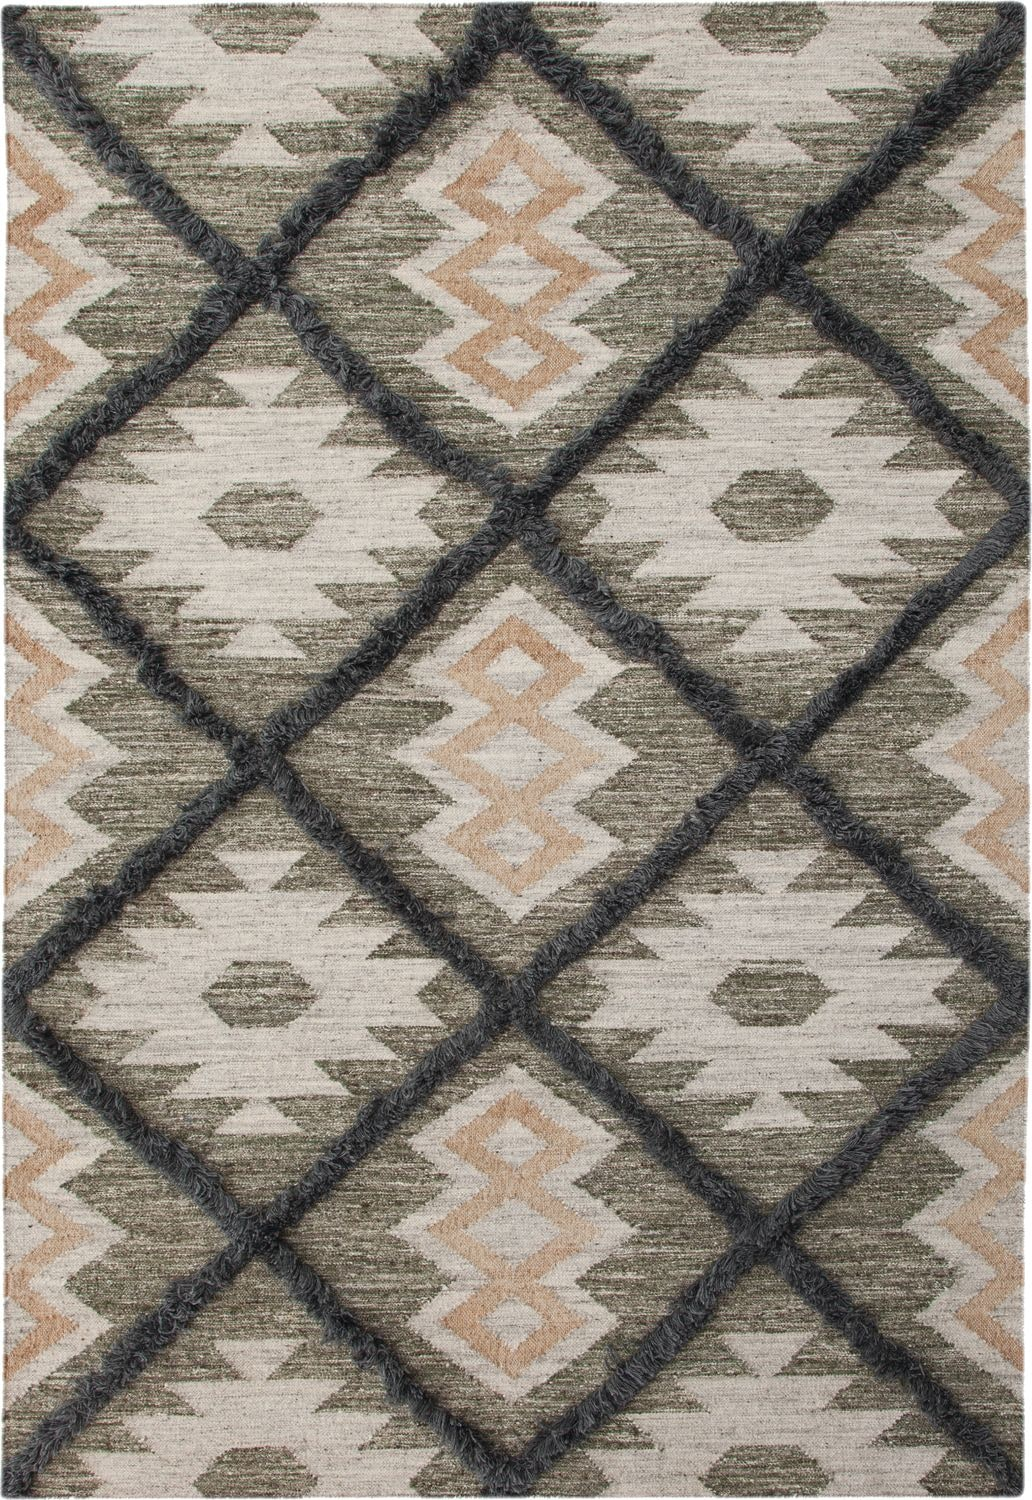 Rugs - Fes Area Rug - Blue/Green